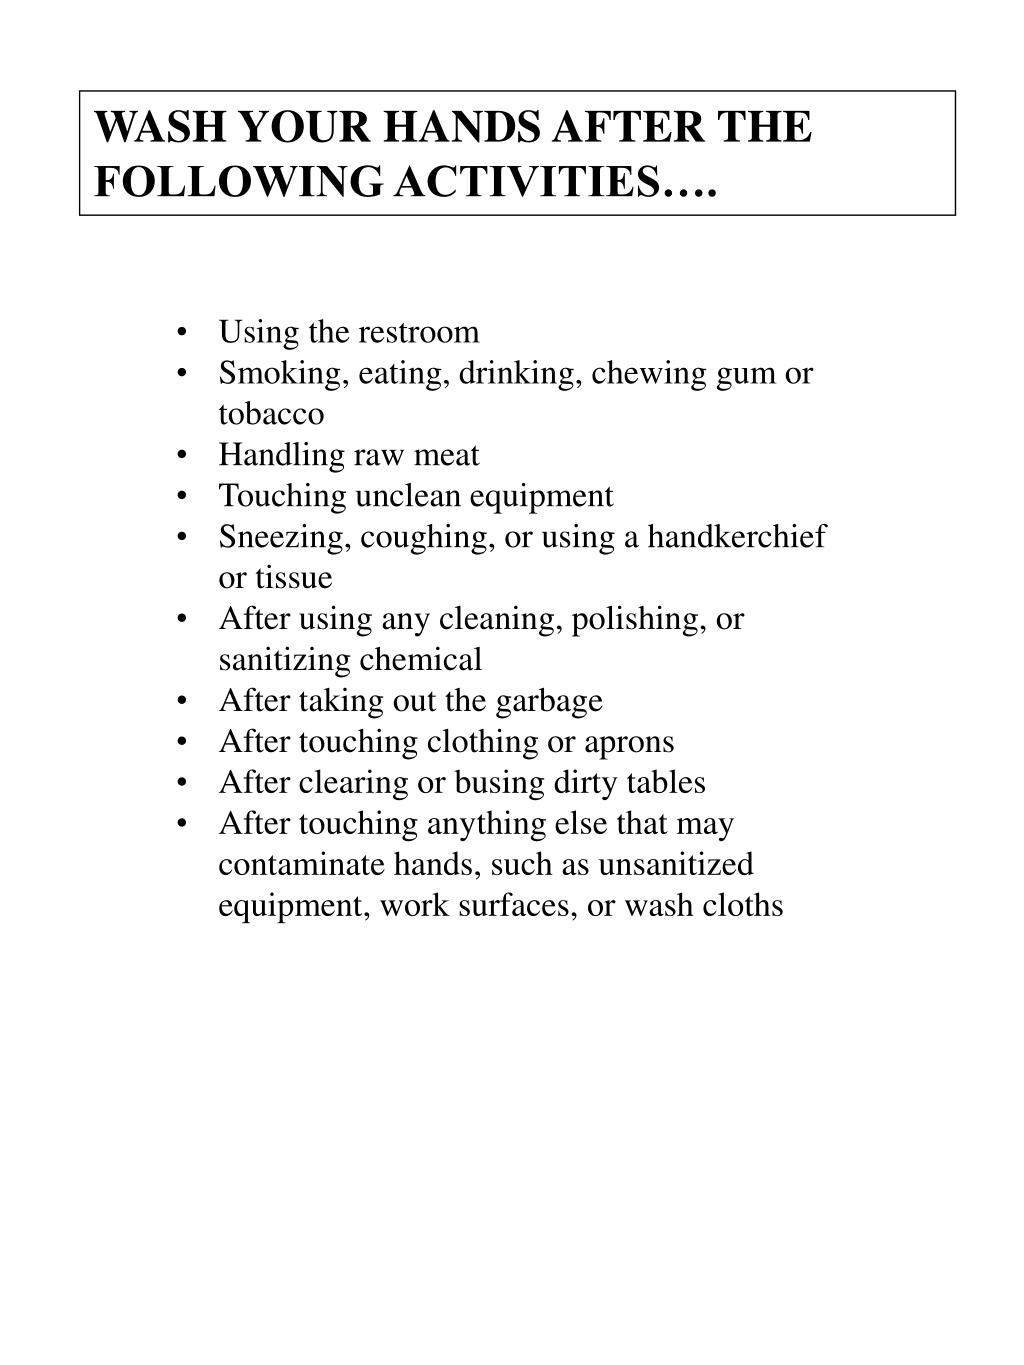 WASH YOUR HANDS AFTER THE FOLLOWING ACTIVITIES….